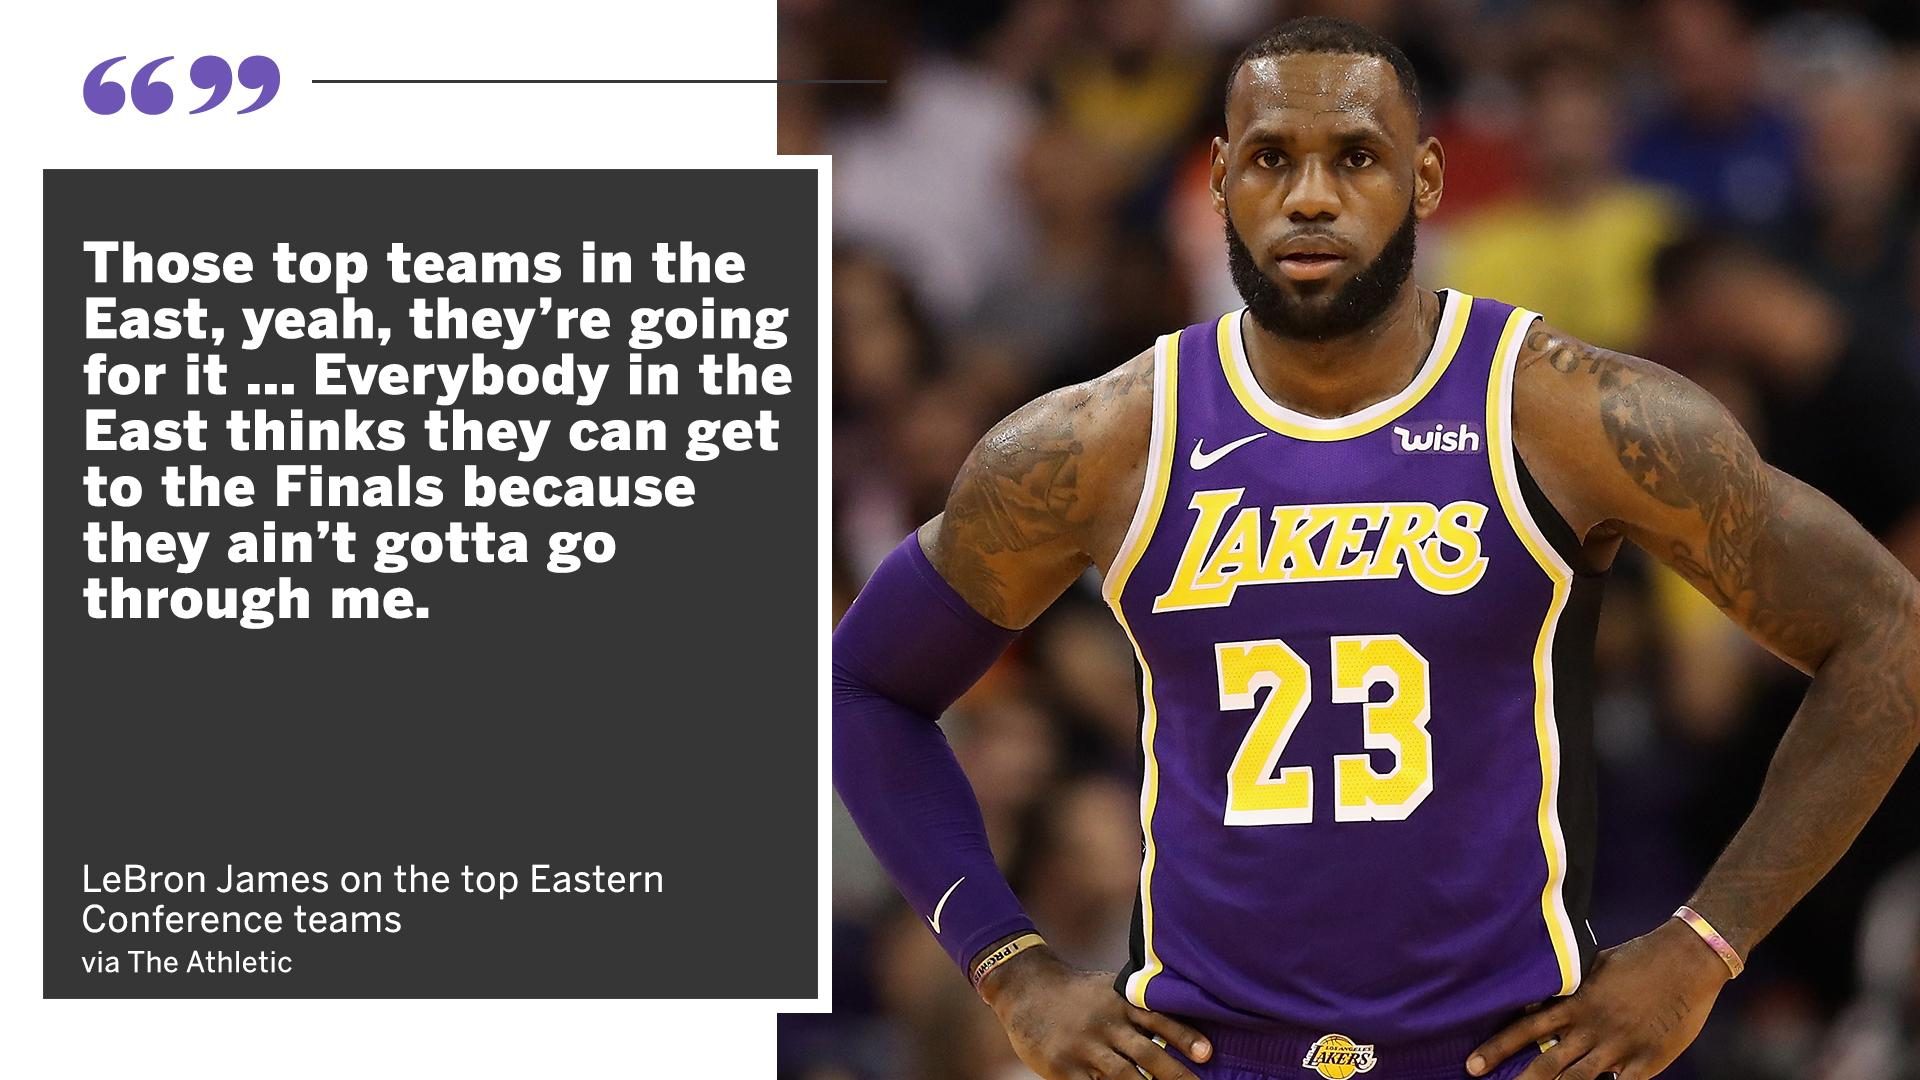 It's a different East without LeBron. https://t.co/o7HWHbG2GS